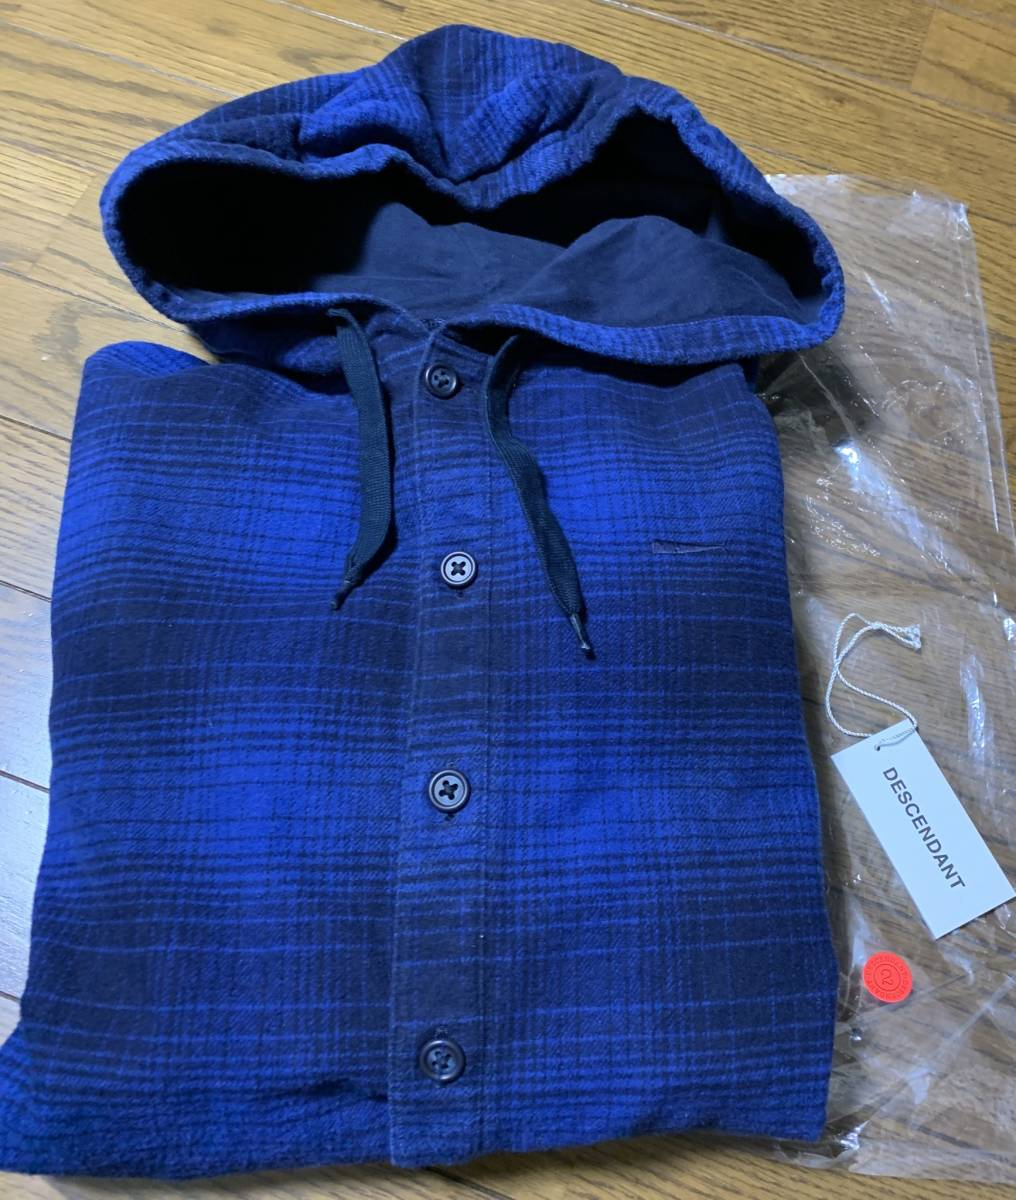 DESCENDANT ディセンダント MULE HOODED LS SHIRT シャツ 2 BLUE 即決 18 A/W 青 M フーディ オンブレ CHECK チェック 中古 正規品 美品 AW_画像6